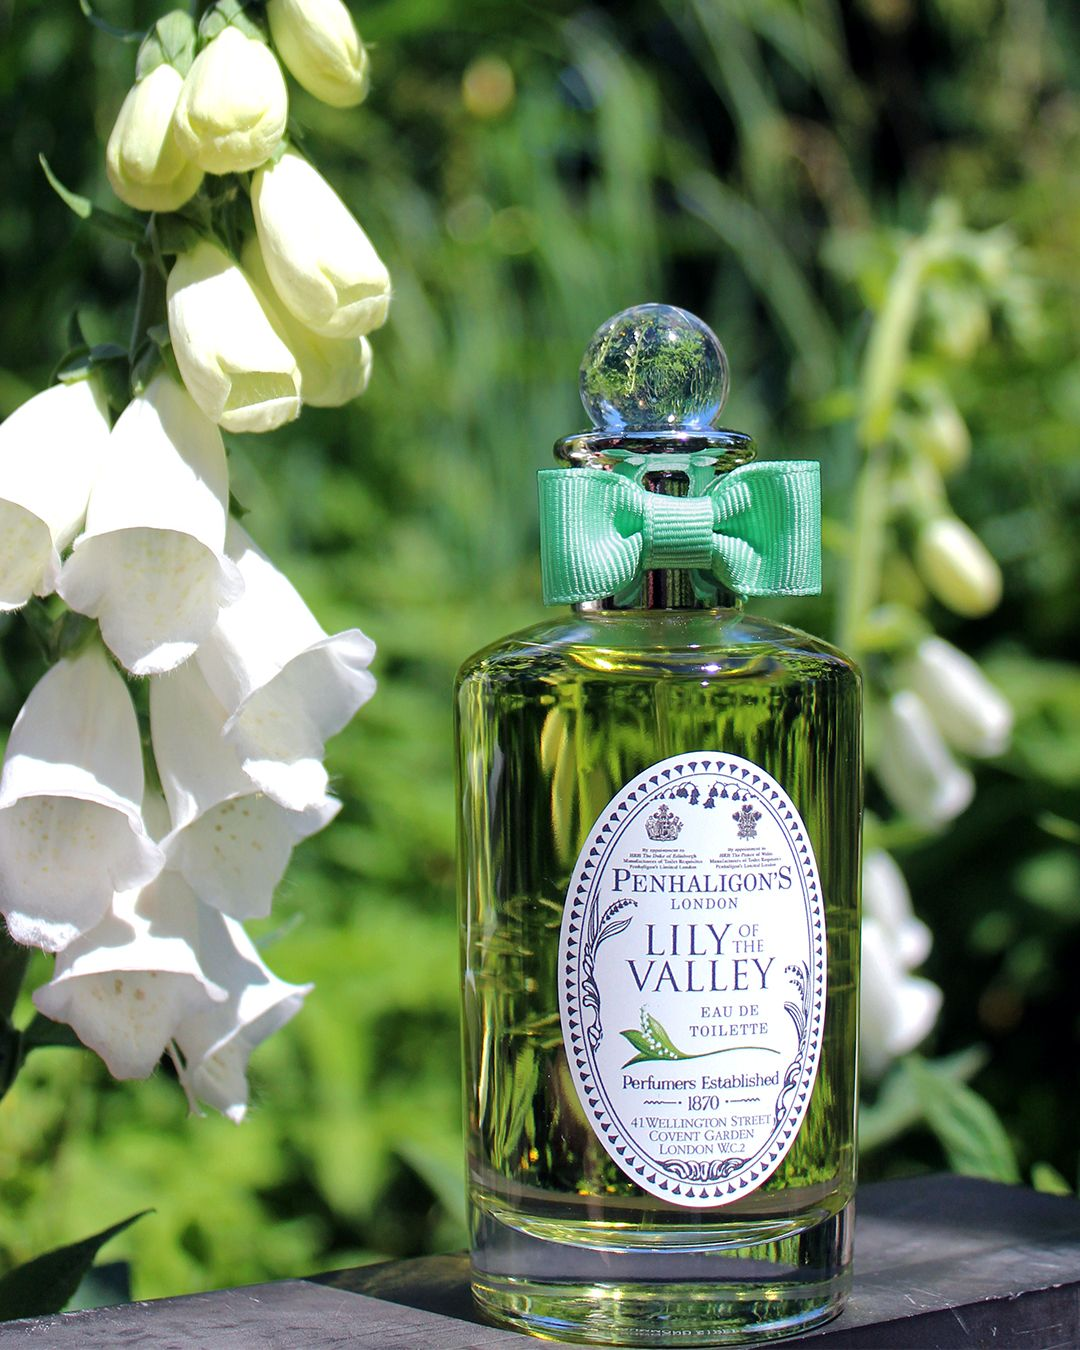 Lily of the valley in 2020 lily of the valley green